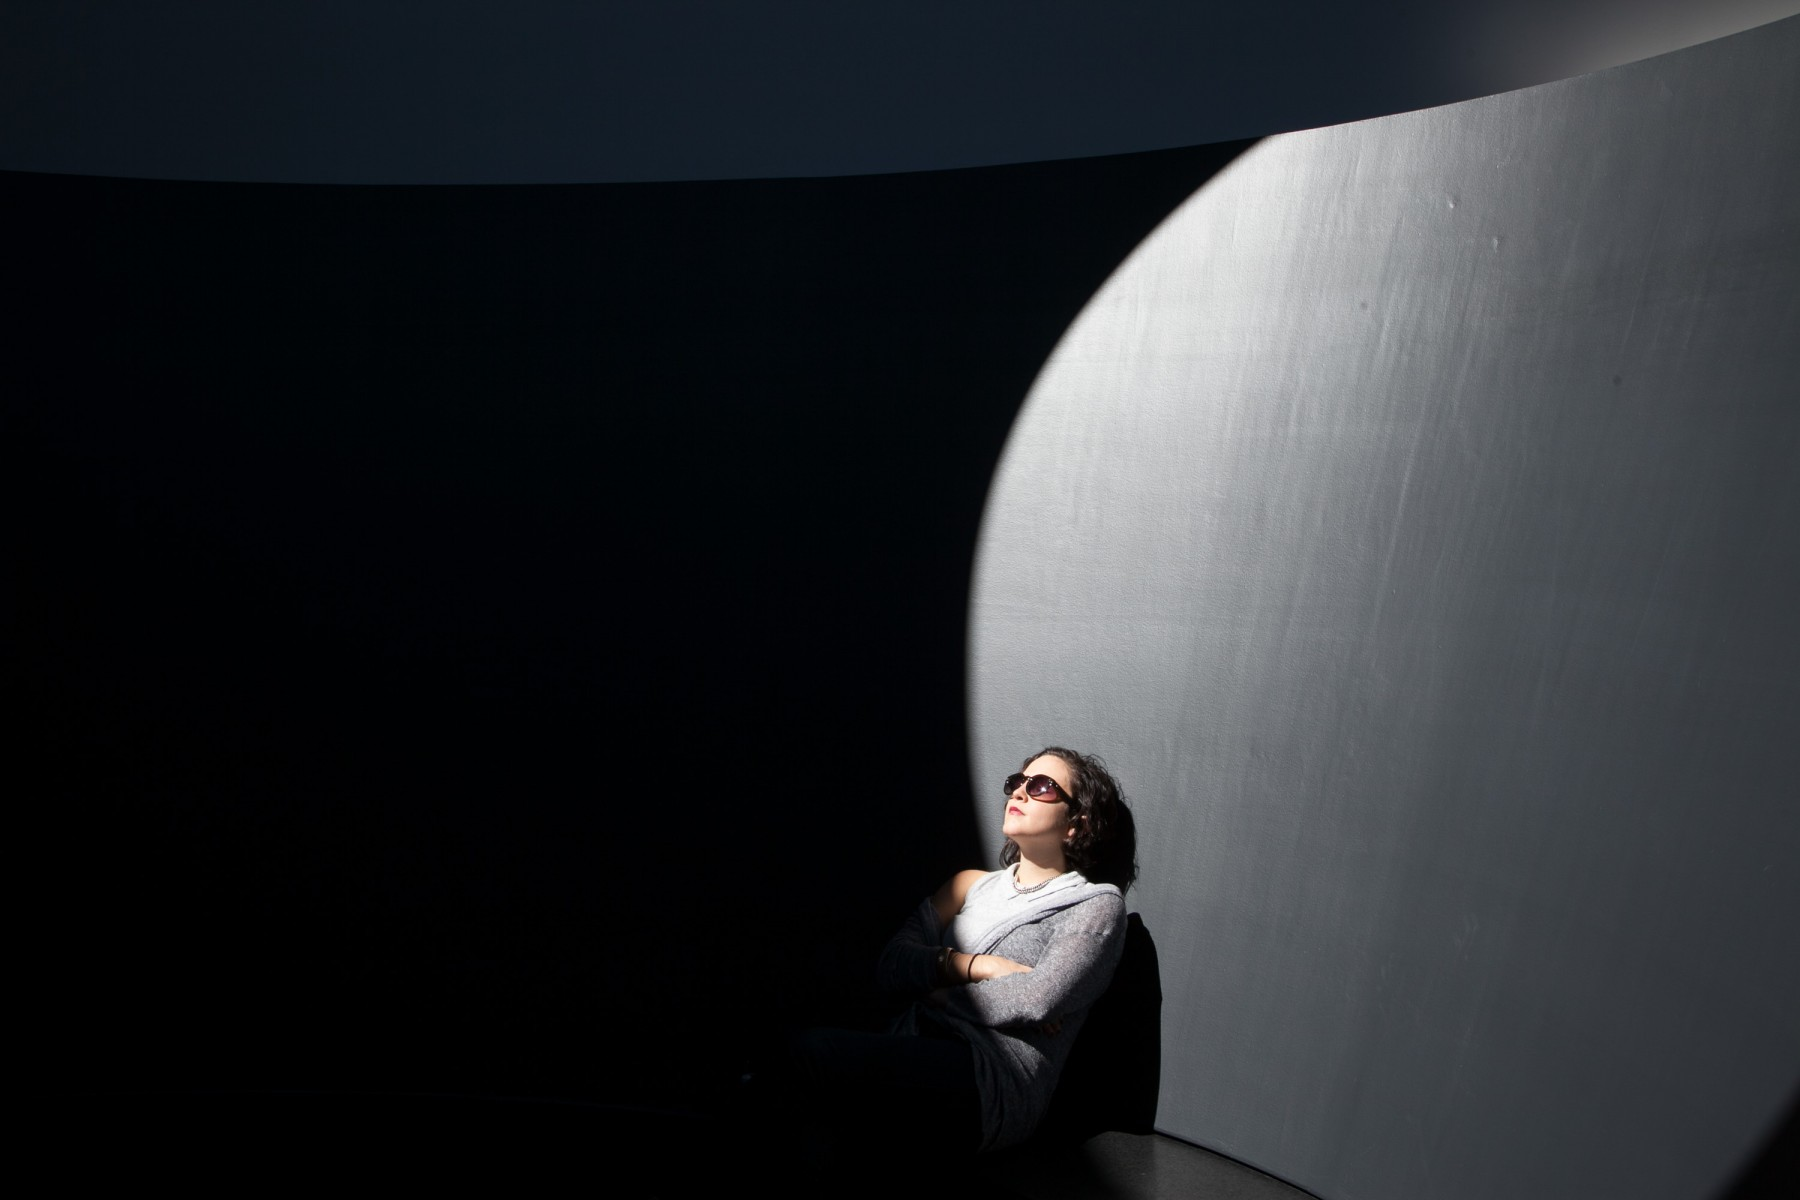 person sitting in sunlight looking up with sunglasses on